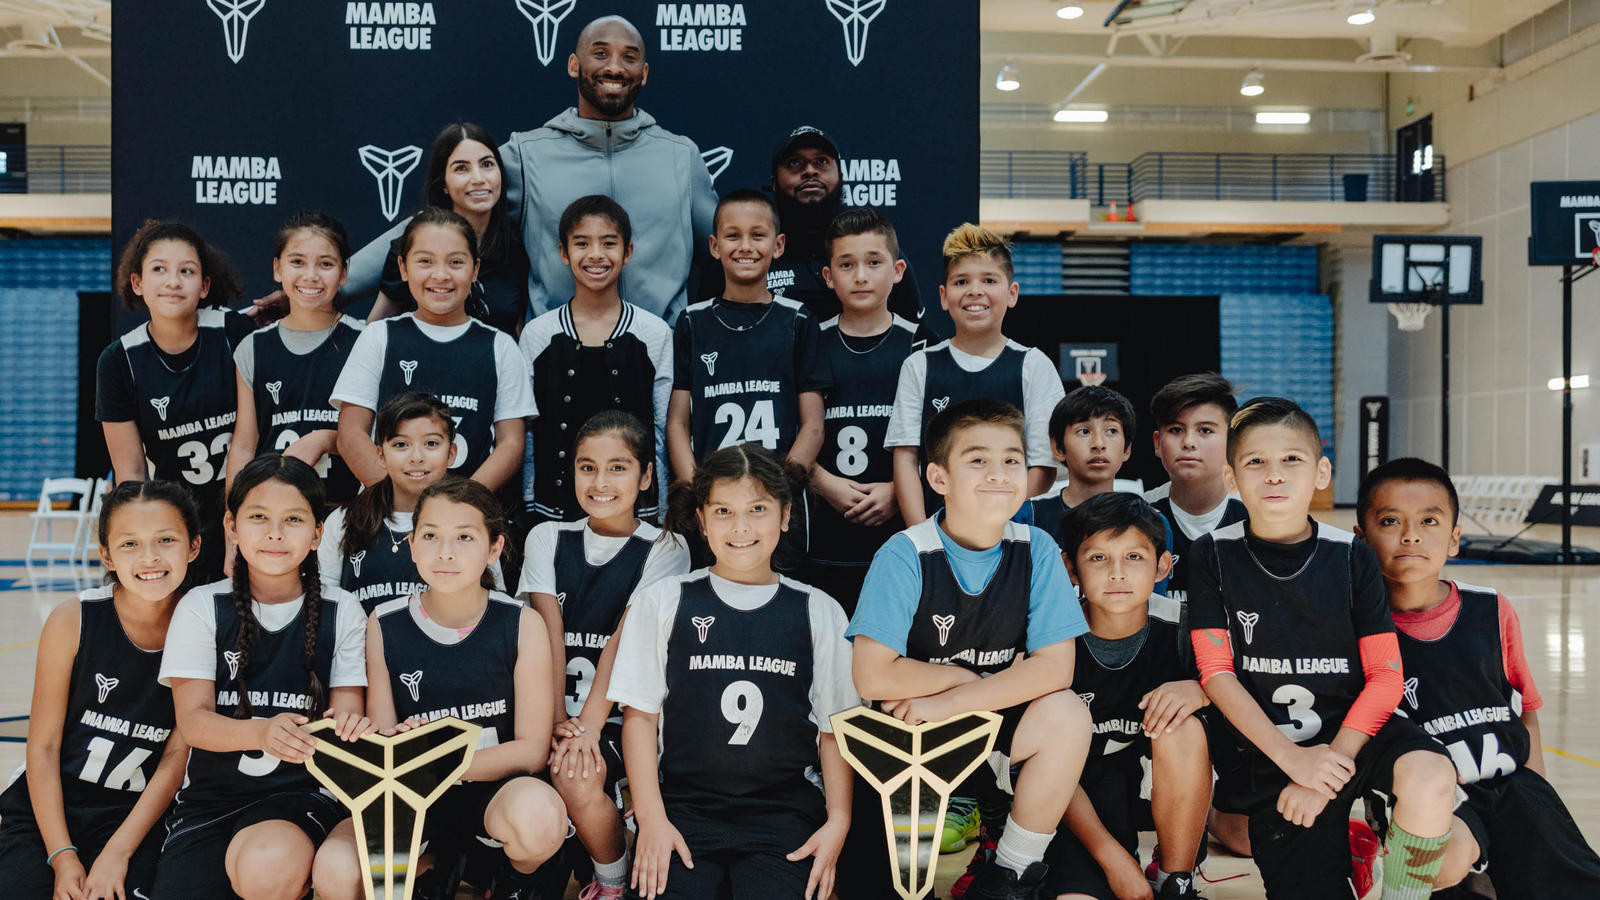 With a Little Help from Kobe Bryant, LA's New Mamba League Gives ...